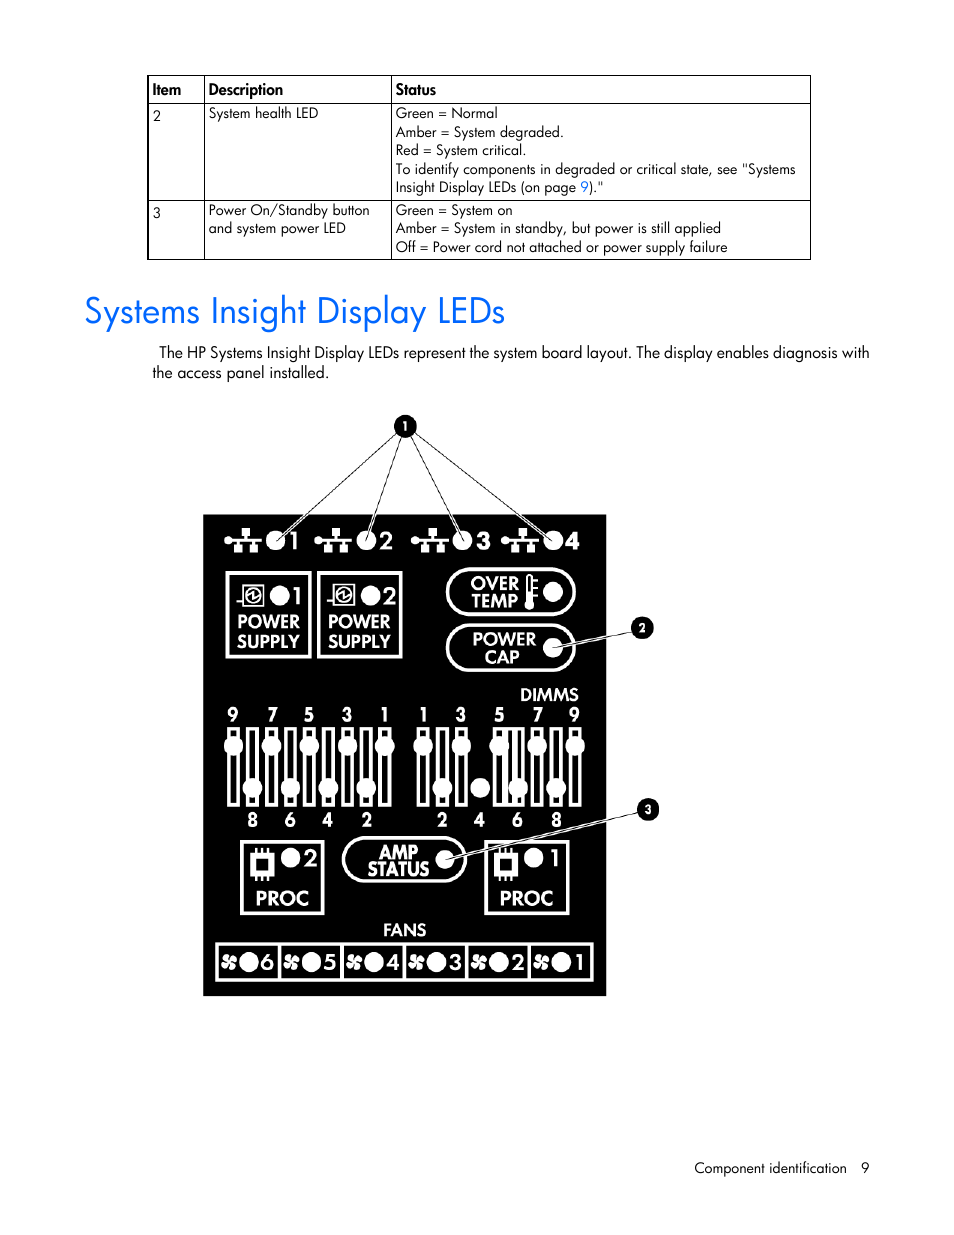 Systems insight display leds | HP ProLiant DL380 G6 Server